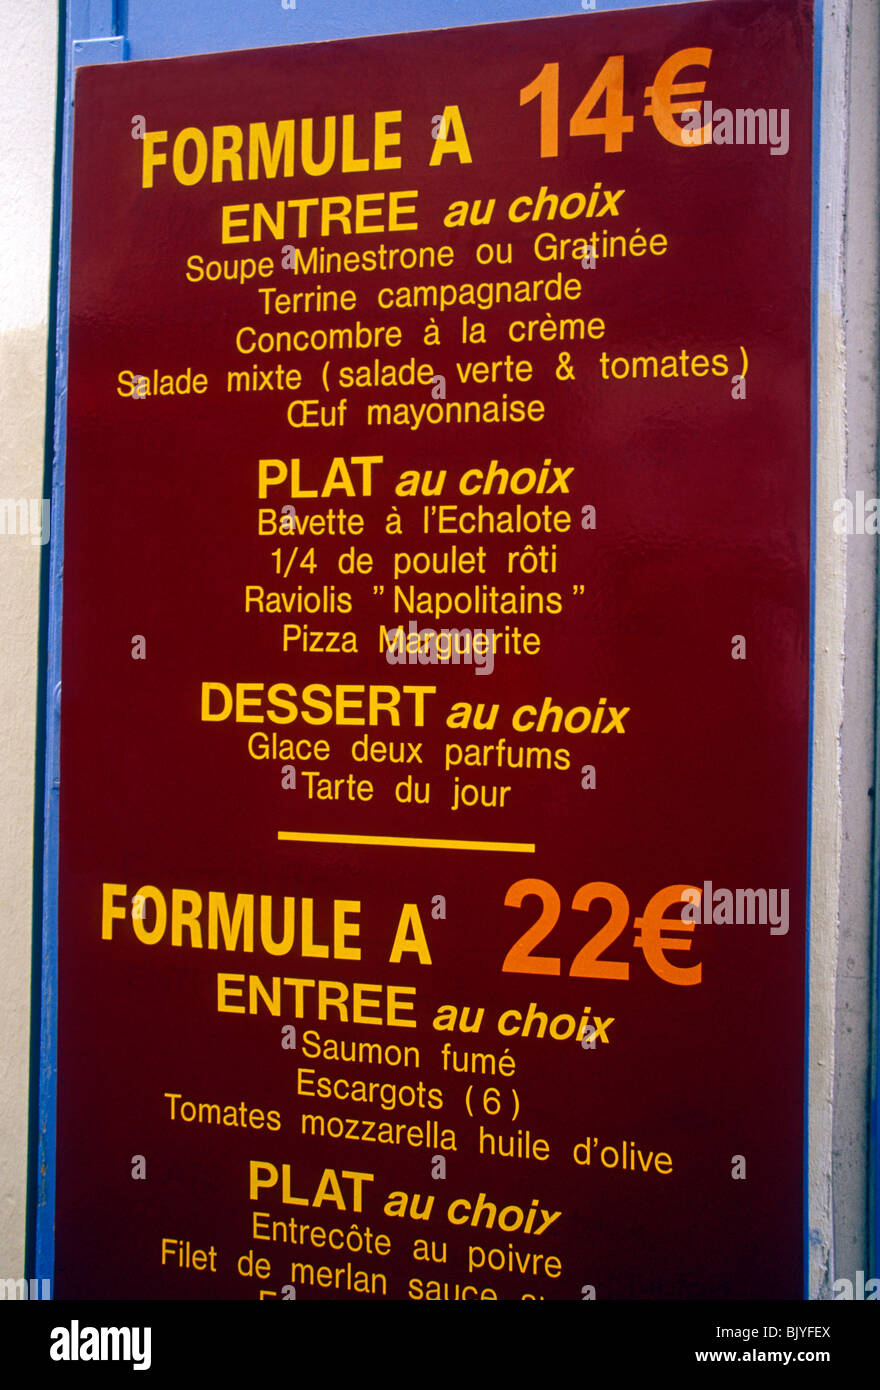 price in euros, sign, menu, french restaurant, french food and drink